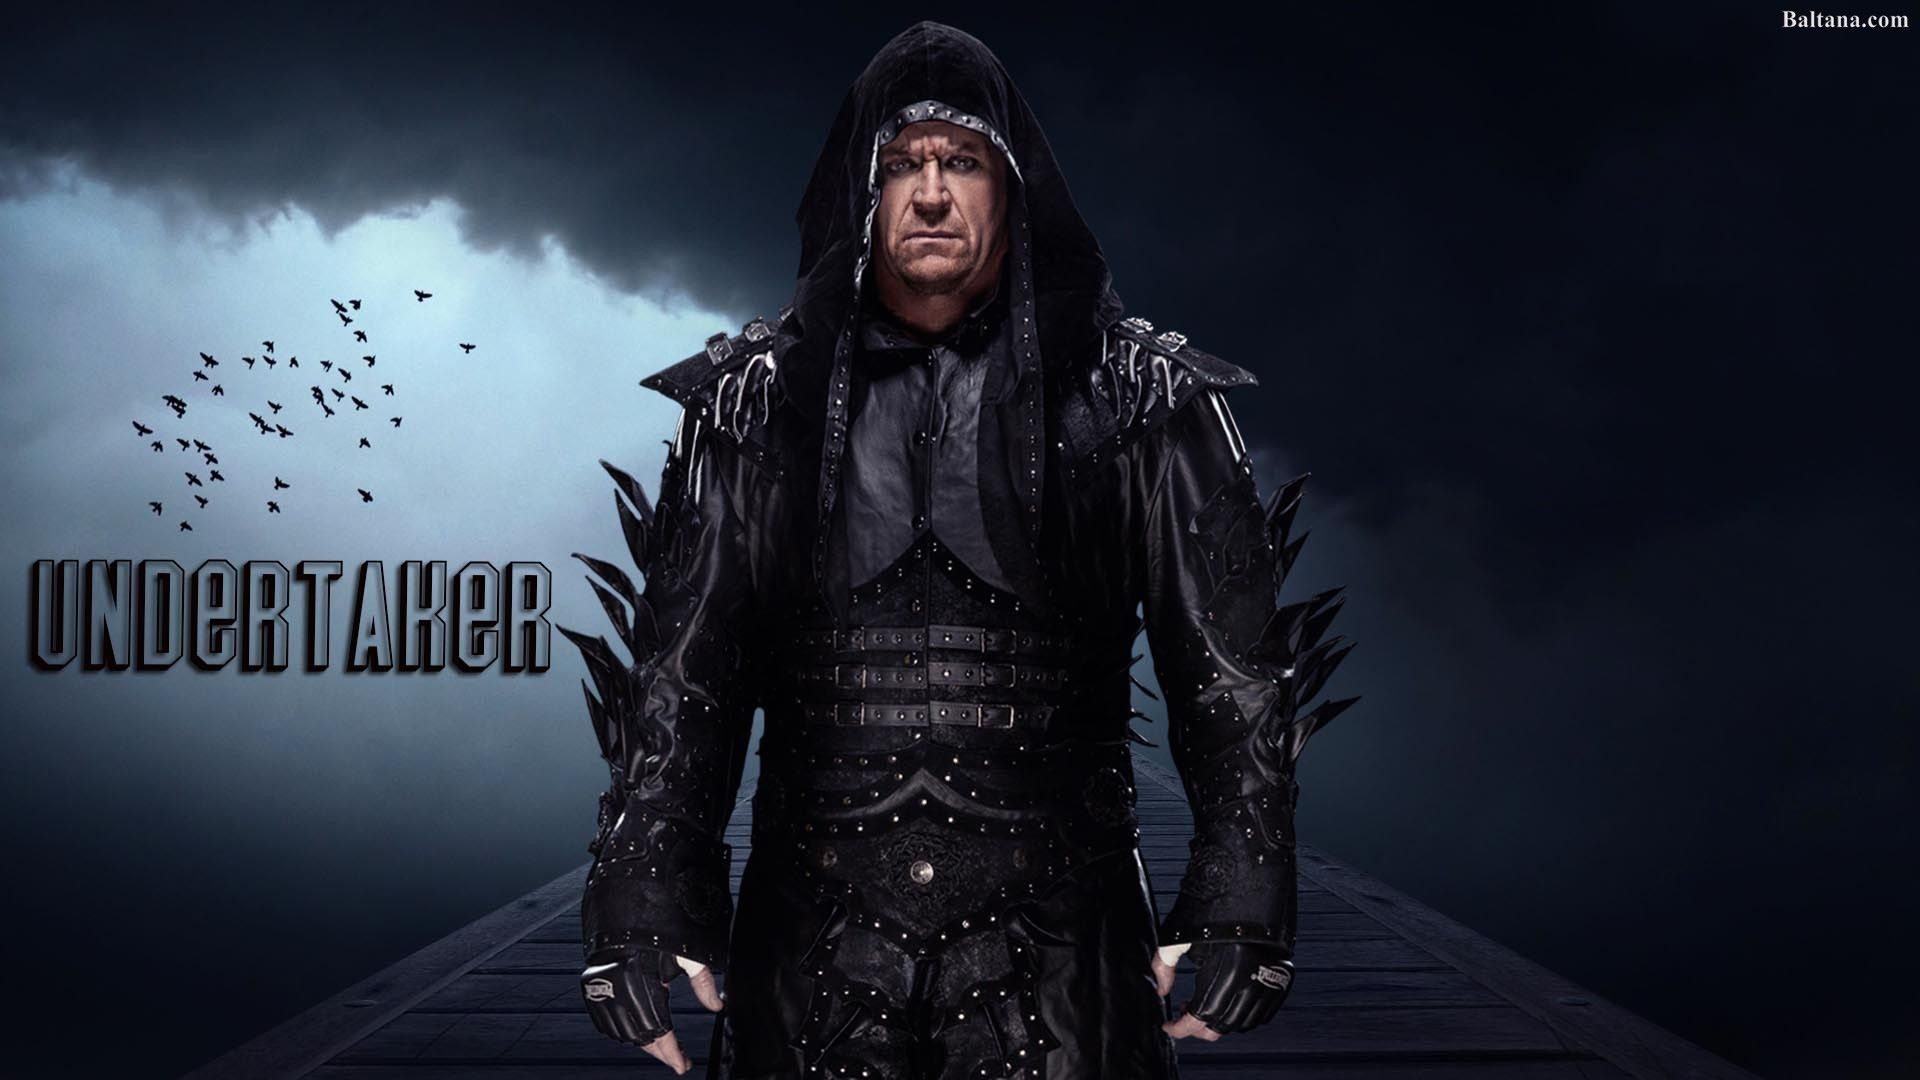 images of undertaker